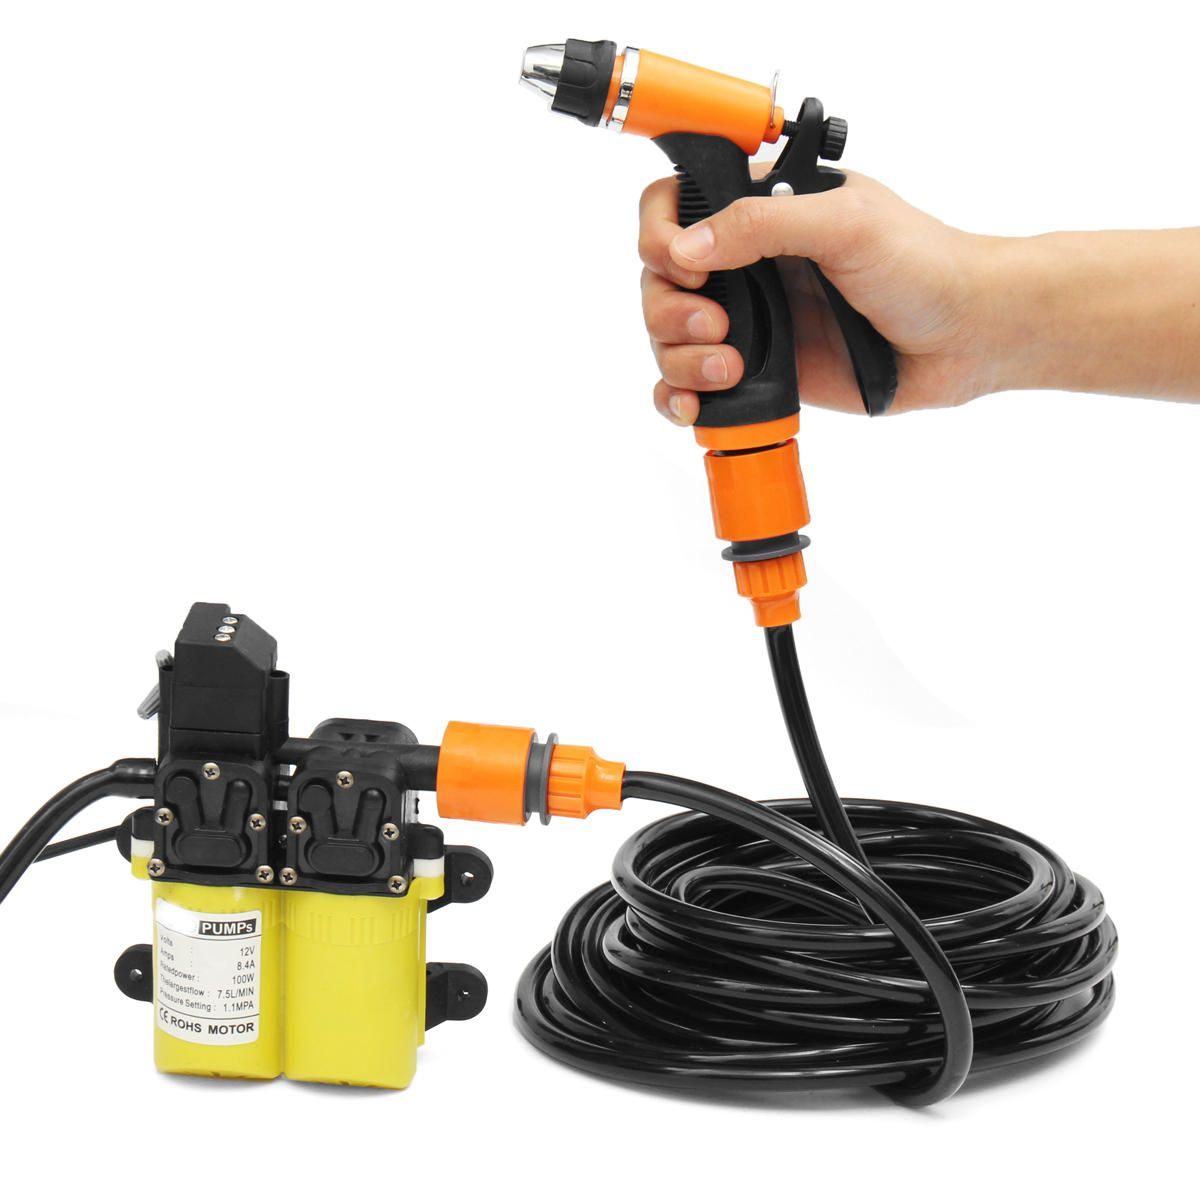 [US65.99] 12V High Pressure Car Electric Washer Water